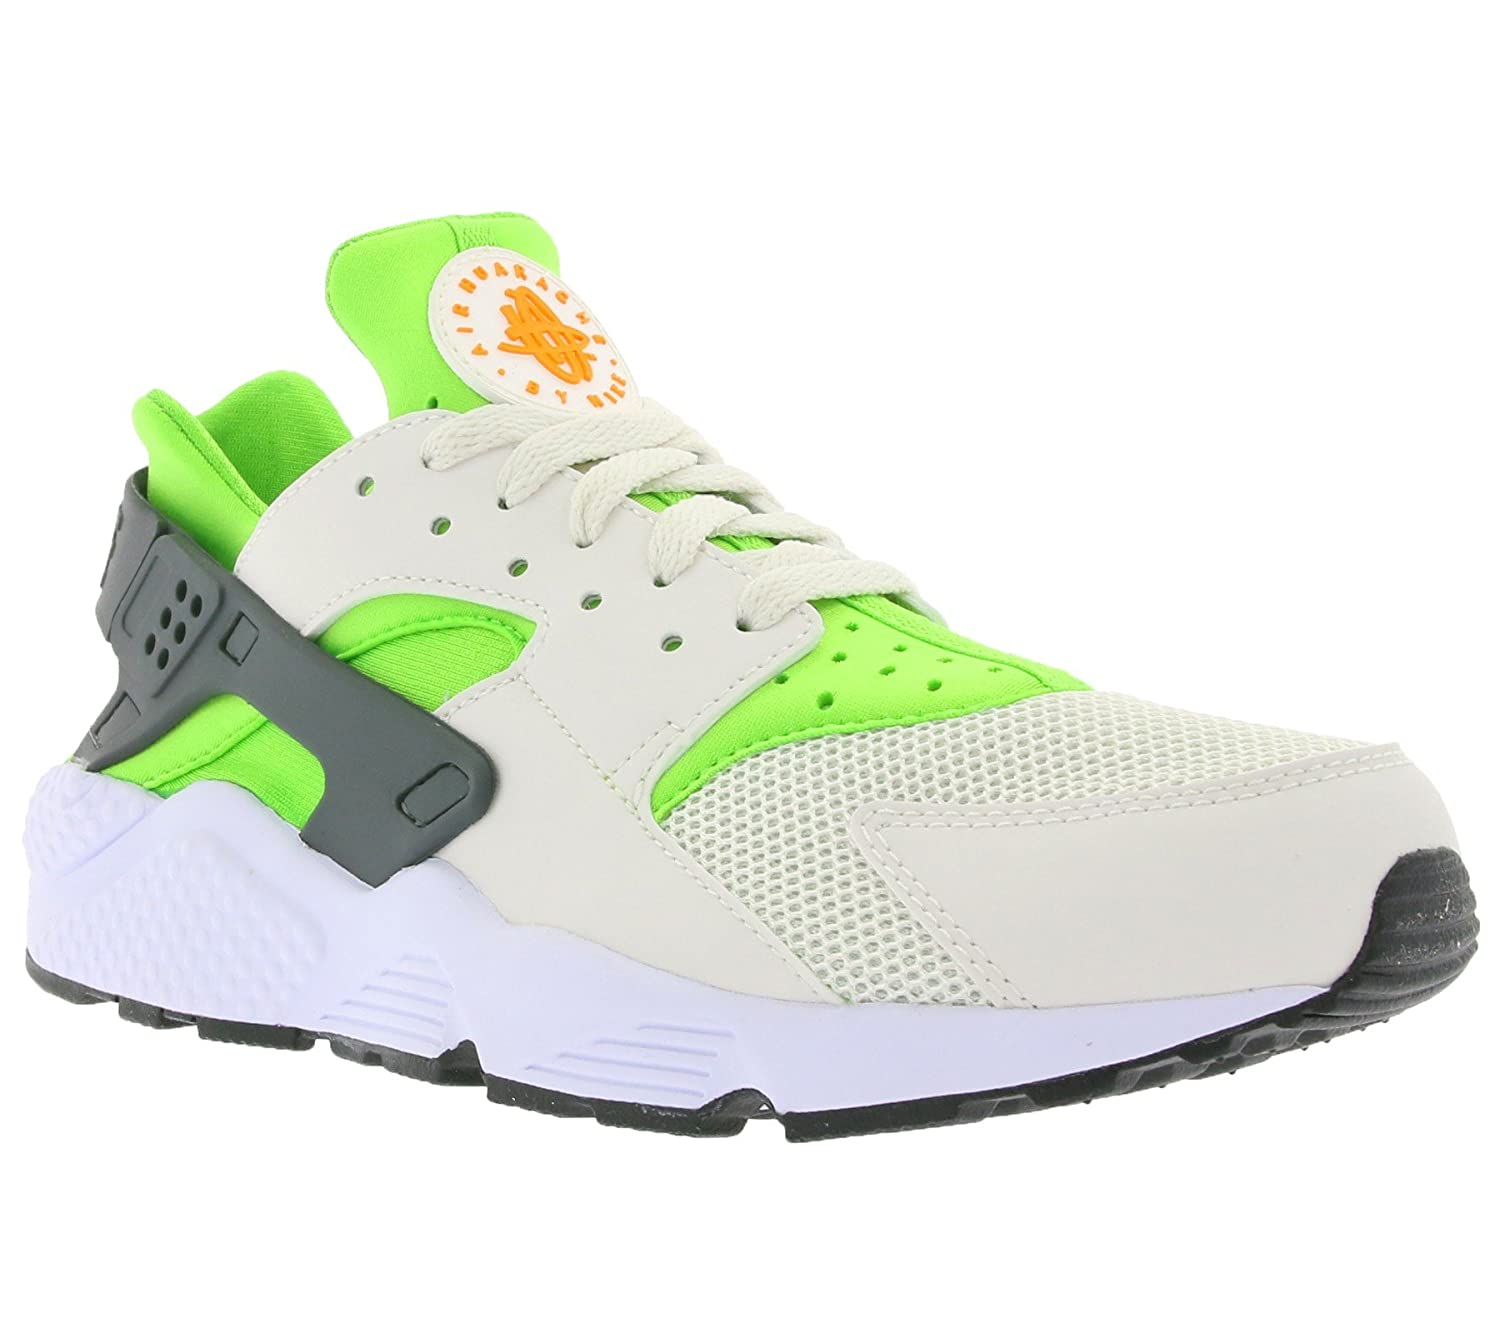 Nike AIR Huarache Mens Running-Shoes 318429-304_10.5 – Action Green Vivid Orange-Phantom-White